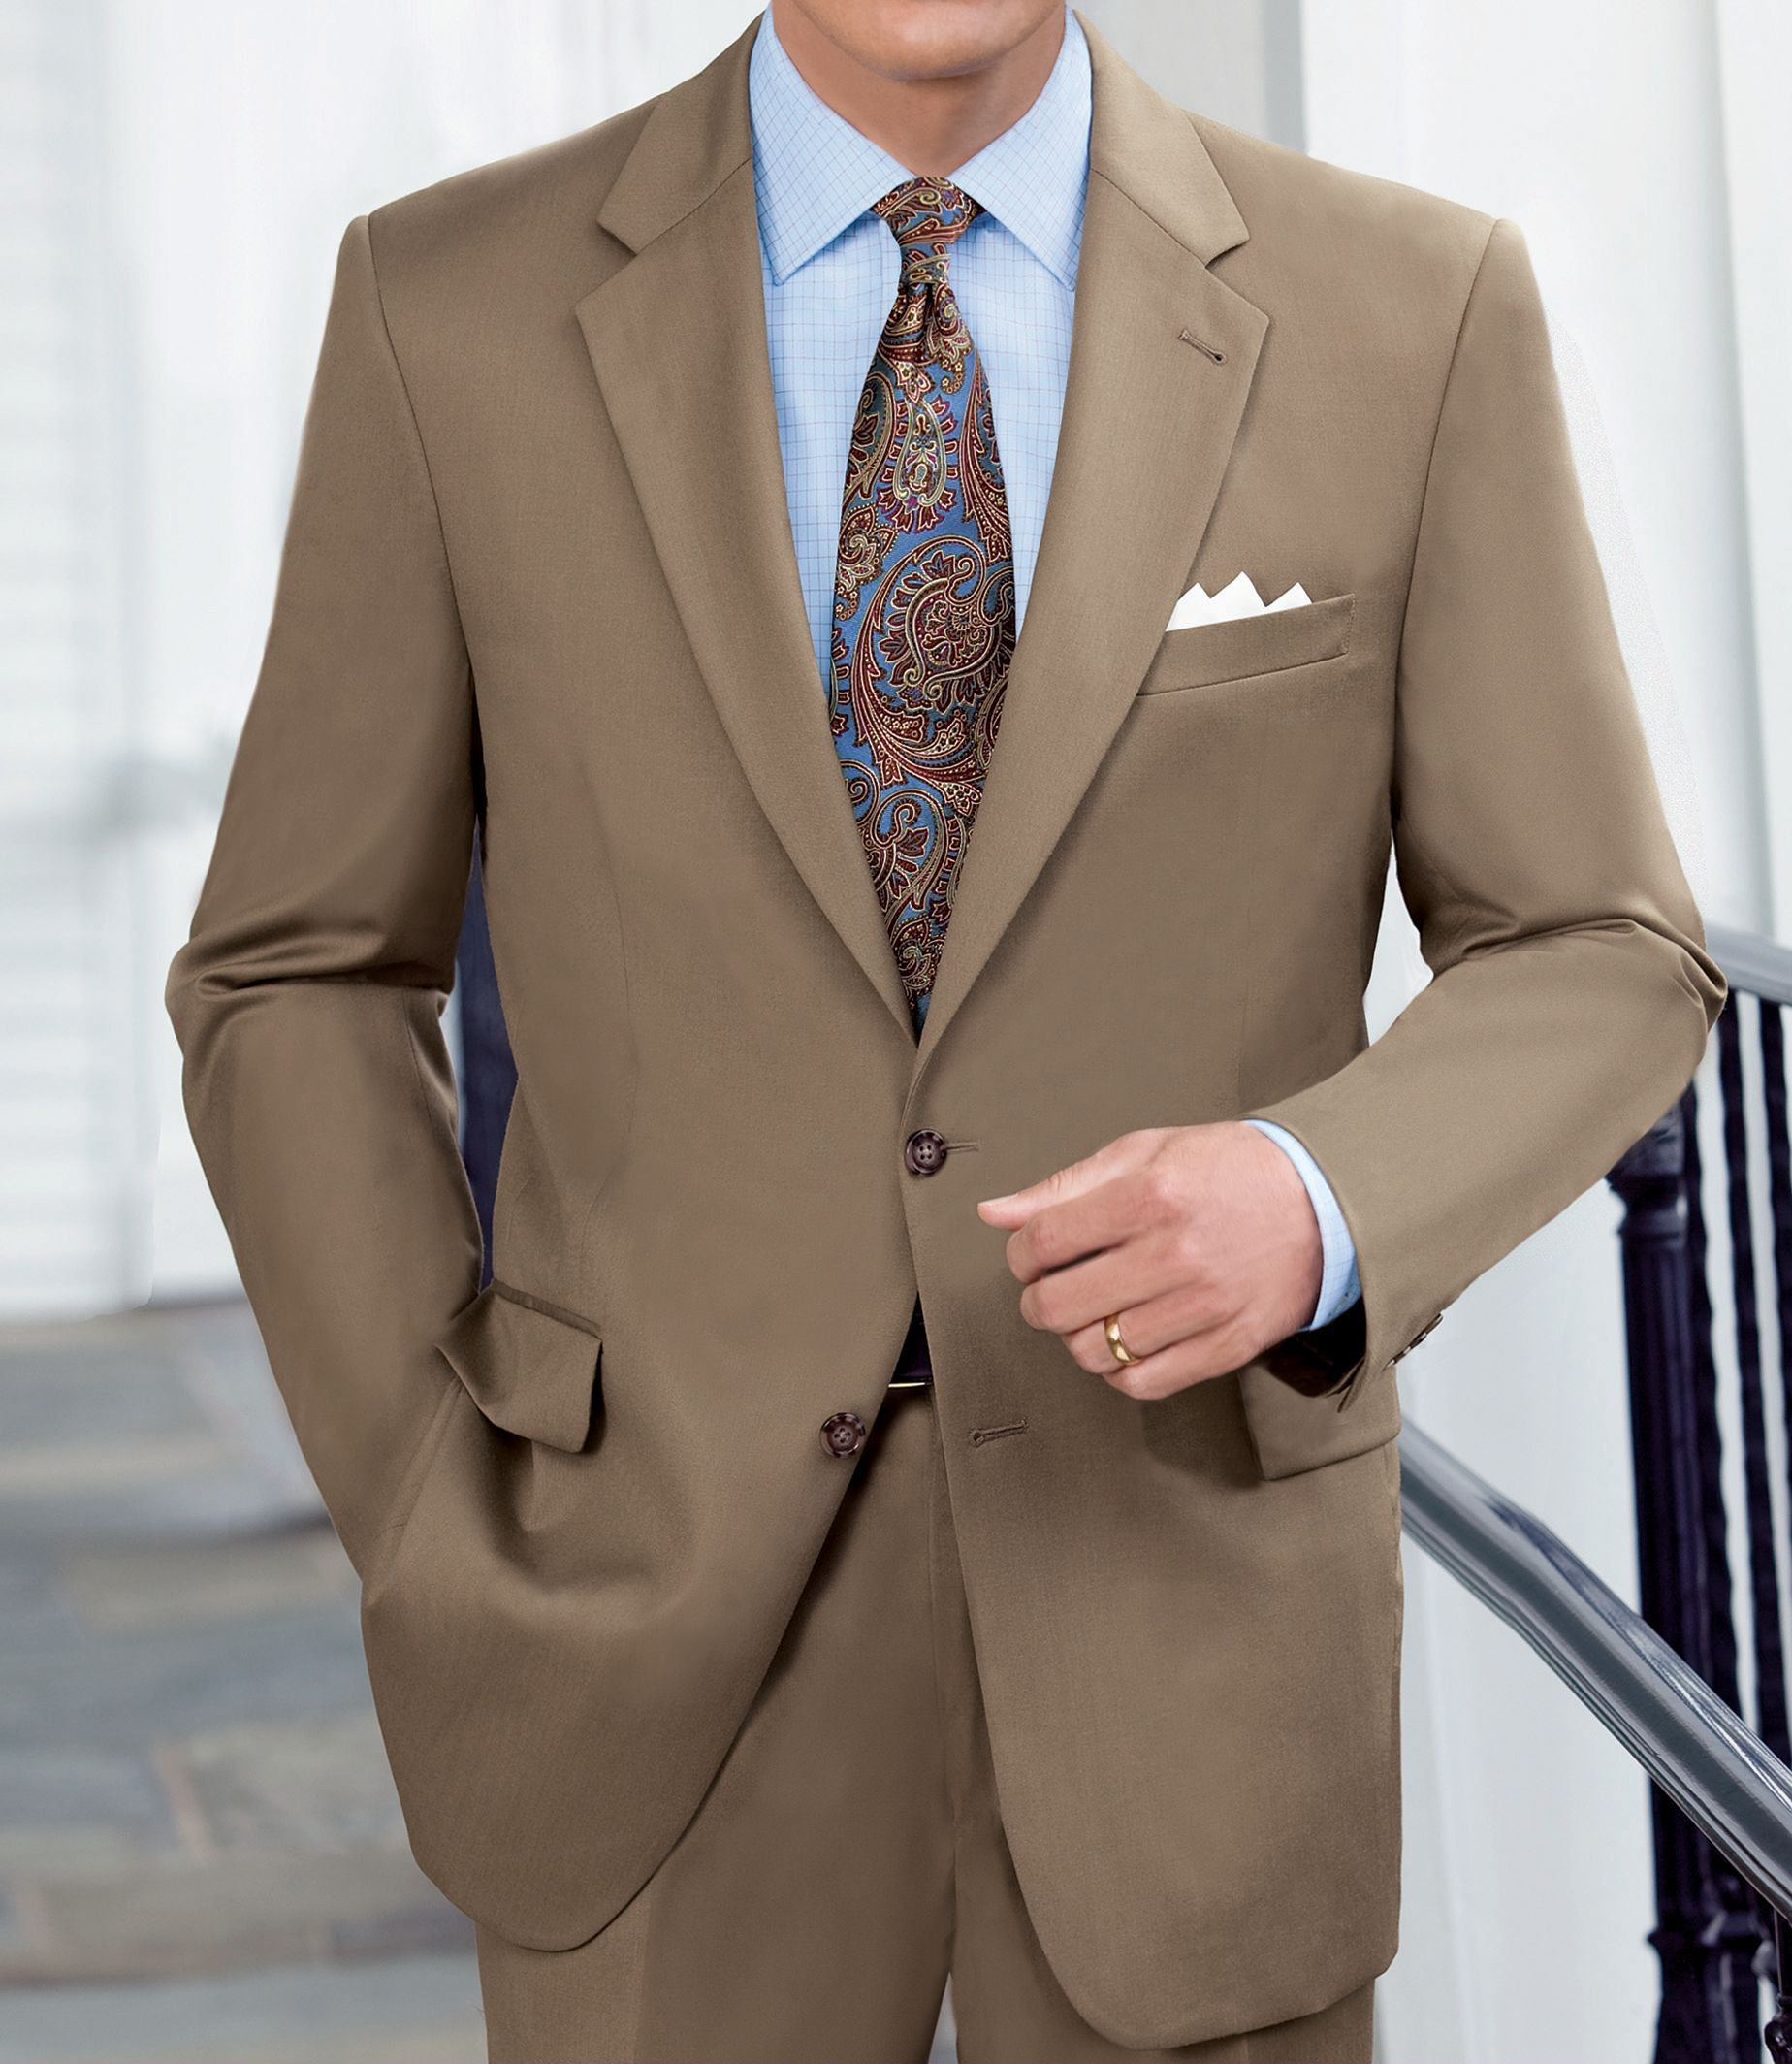 Traveler Suit Separate 2-Button Jacket - BRTSH TAN - 46 - LONG